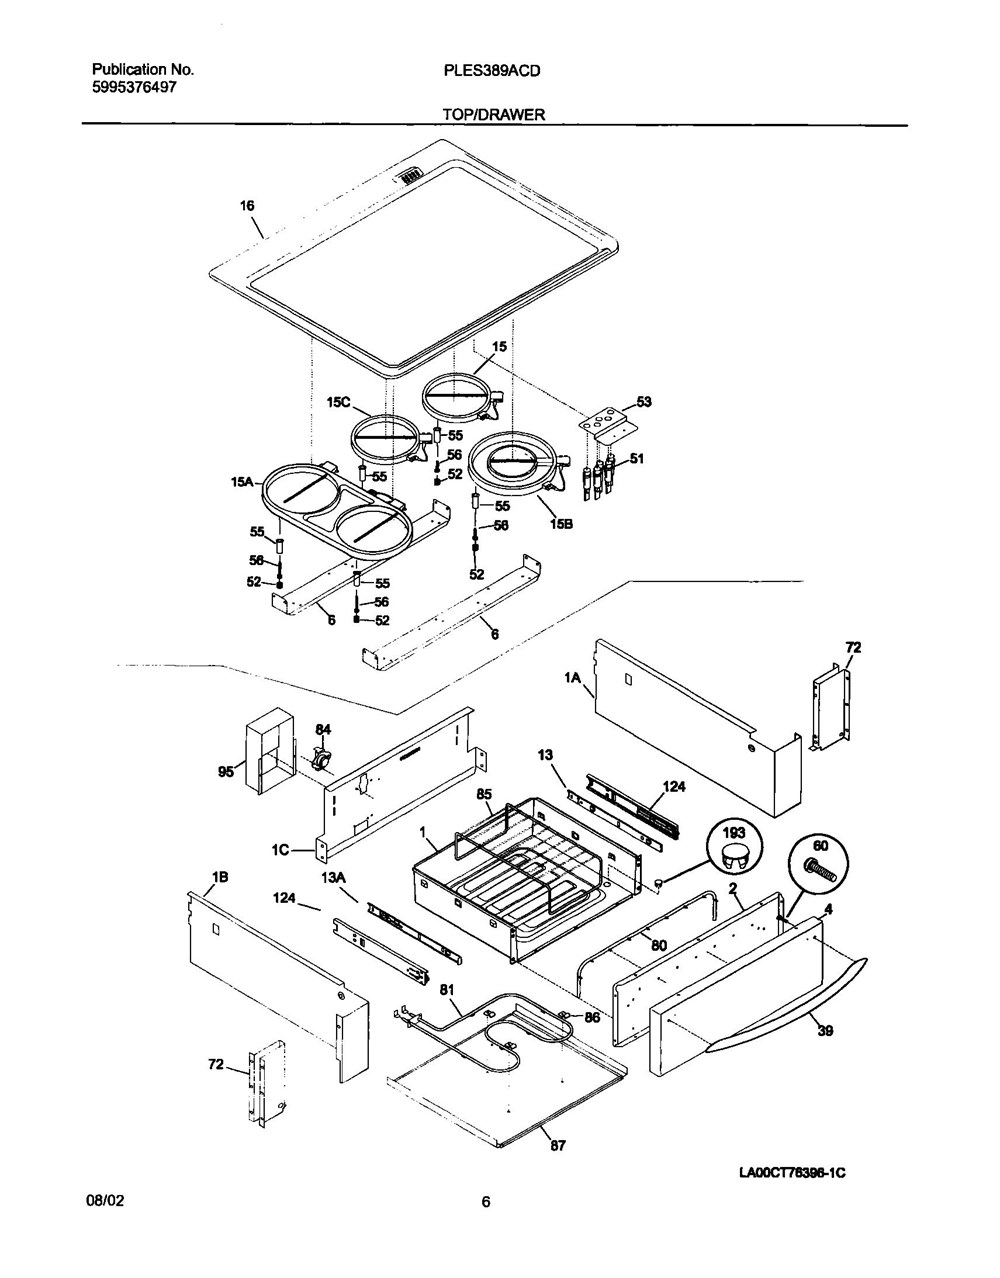 Ples389acd Frigidaire Company Appliance Parts Backguard 05body 07top Drawer 09door 01cover 10wiring Diagram